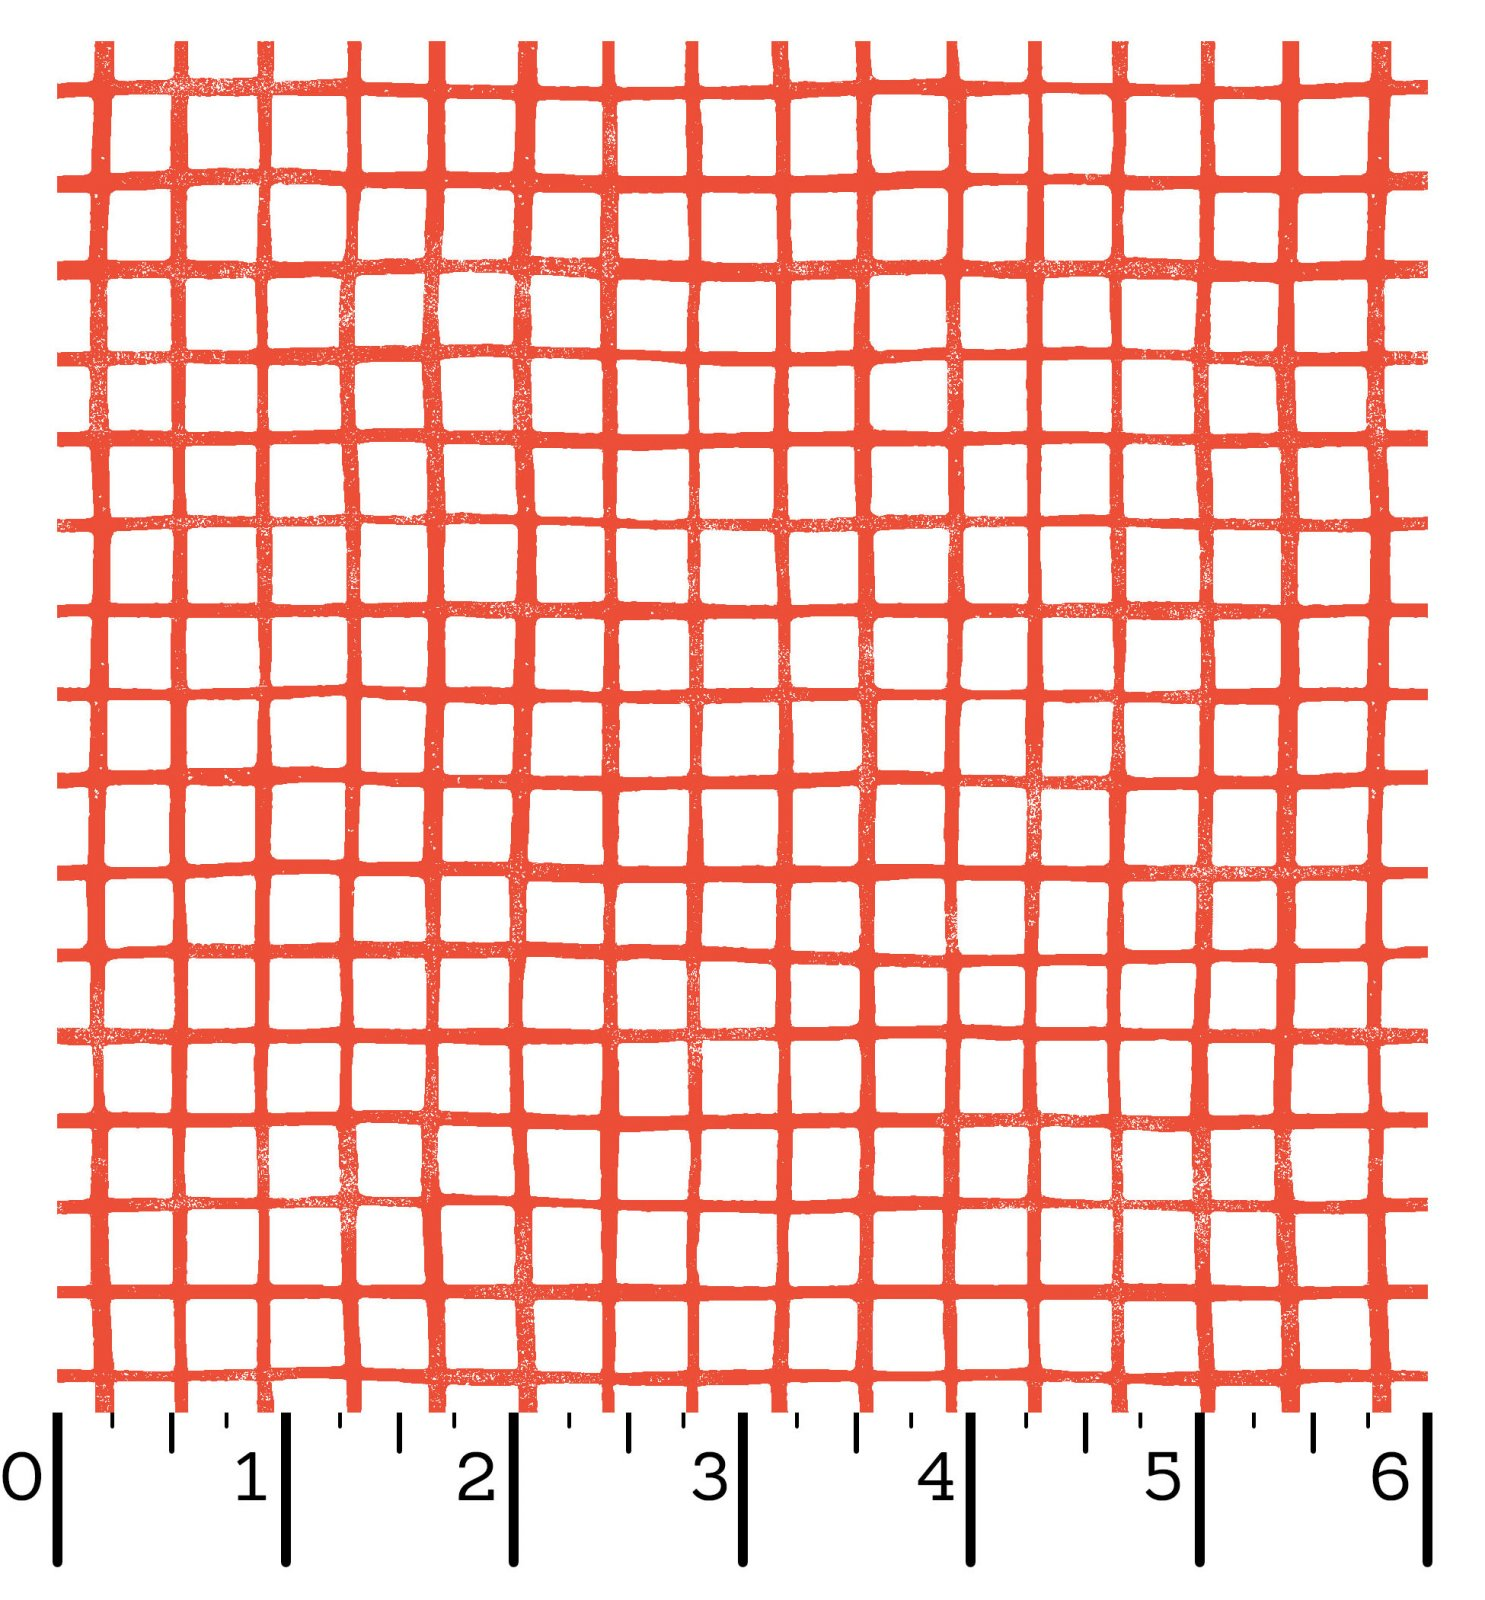 EESC-10083 R - CAN ANIMALS COUNT? BY MAYWOOD STUDIO PRINTED GRID RED - ARRIVING IN OCTOBER 2021